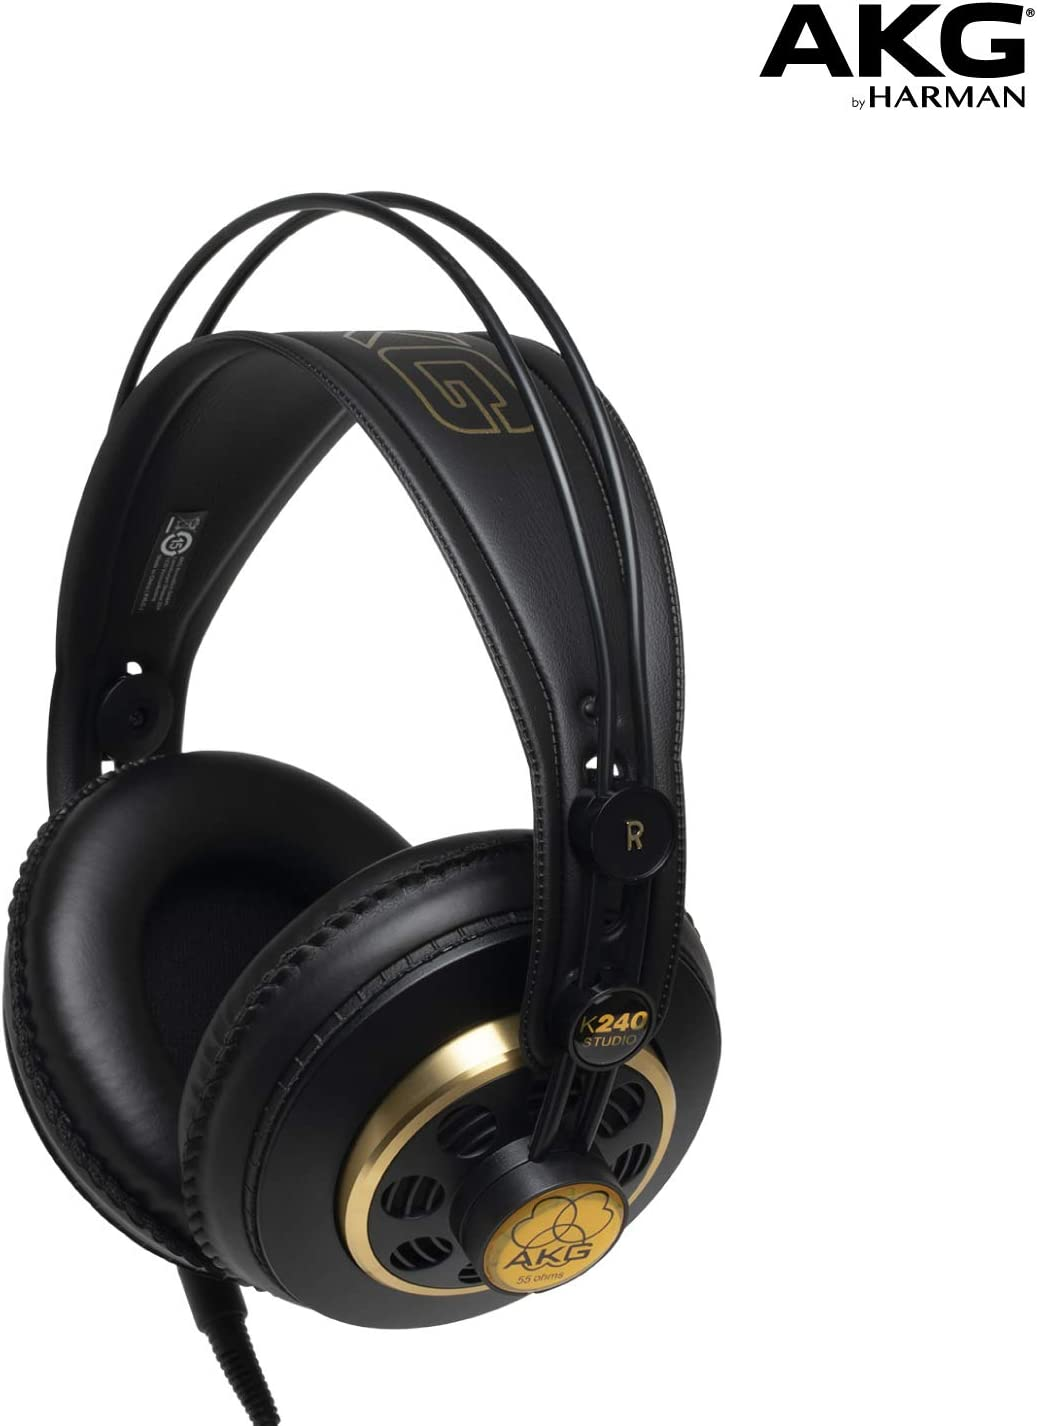 10 Best Vintage Headphones & Retro Headphones Of 2020 10